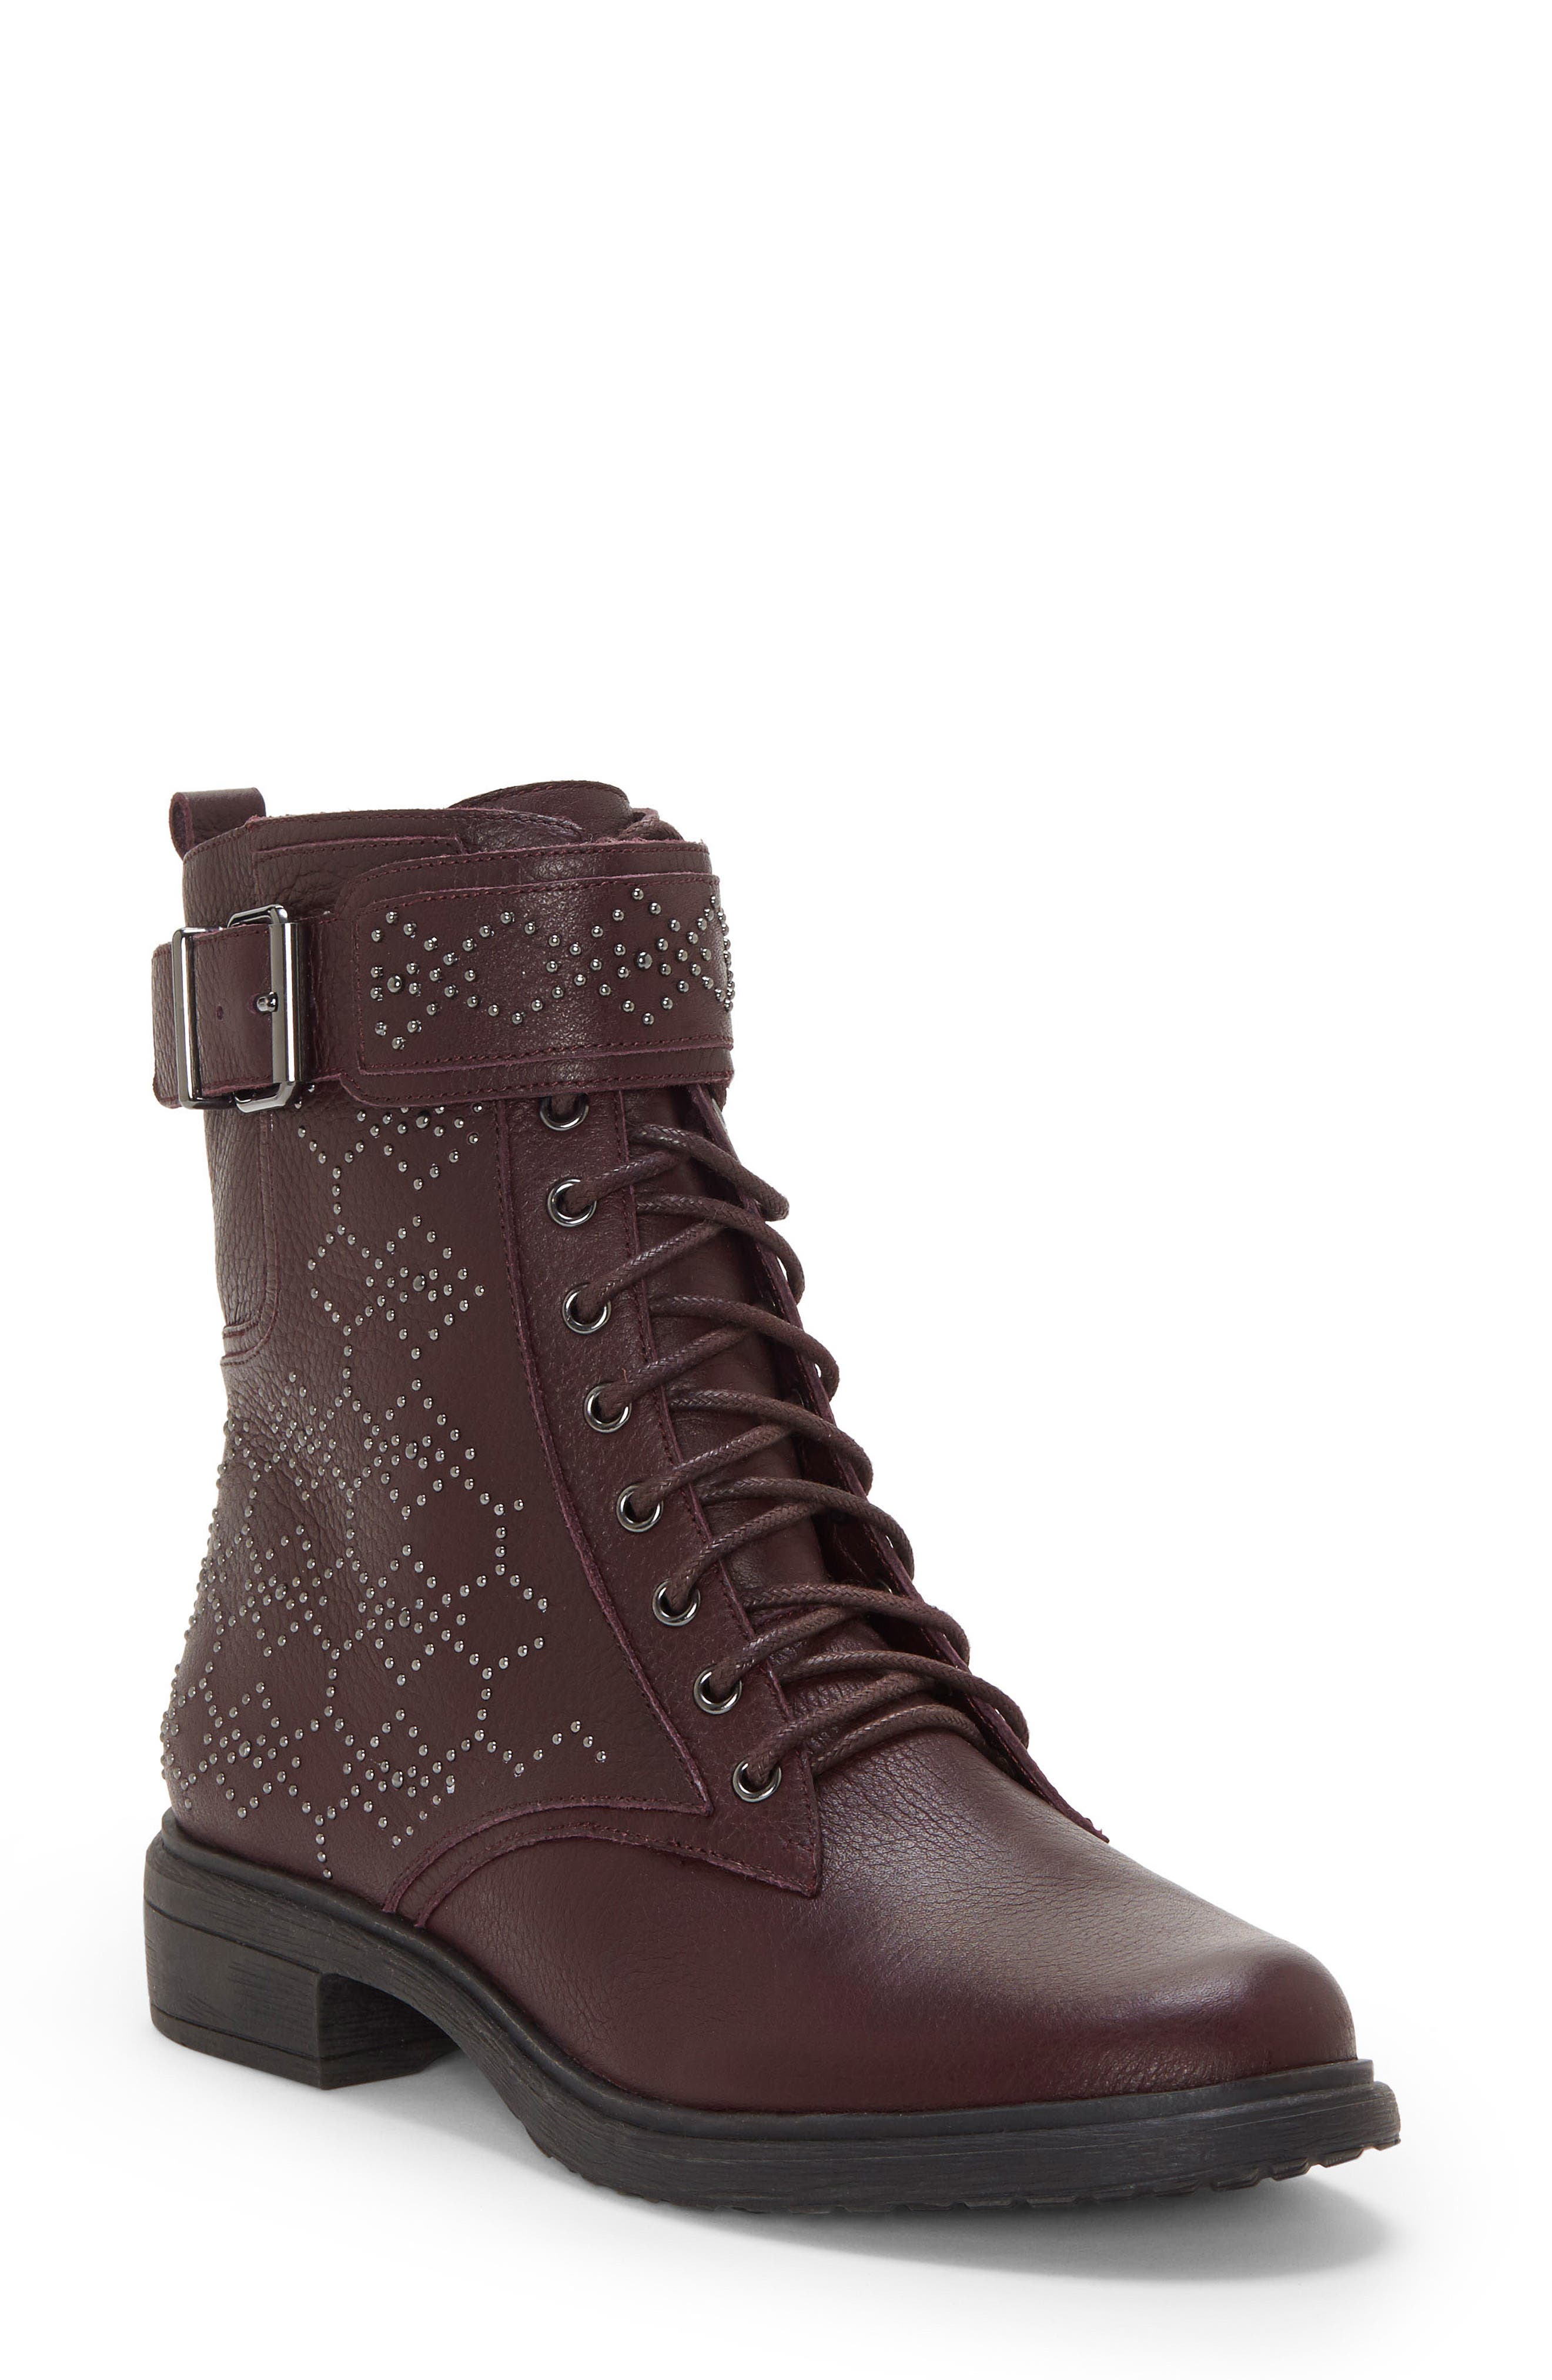 VINCE CAMUTO Tanowie Boot, Main, color, VAMP LEATHER